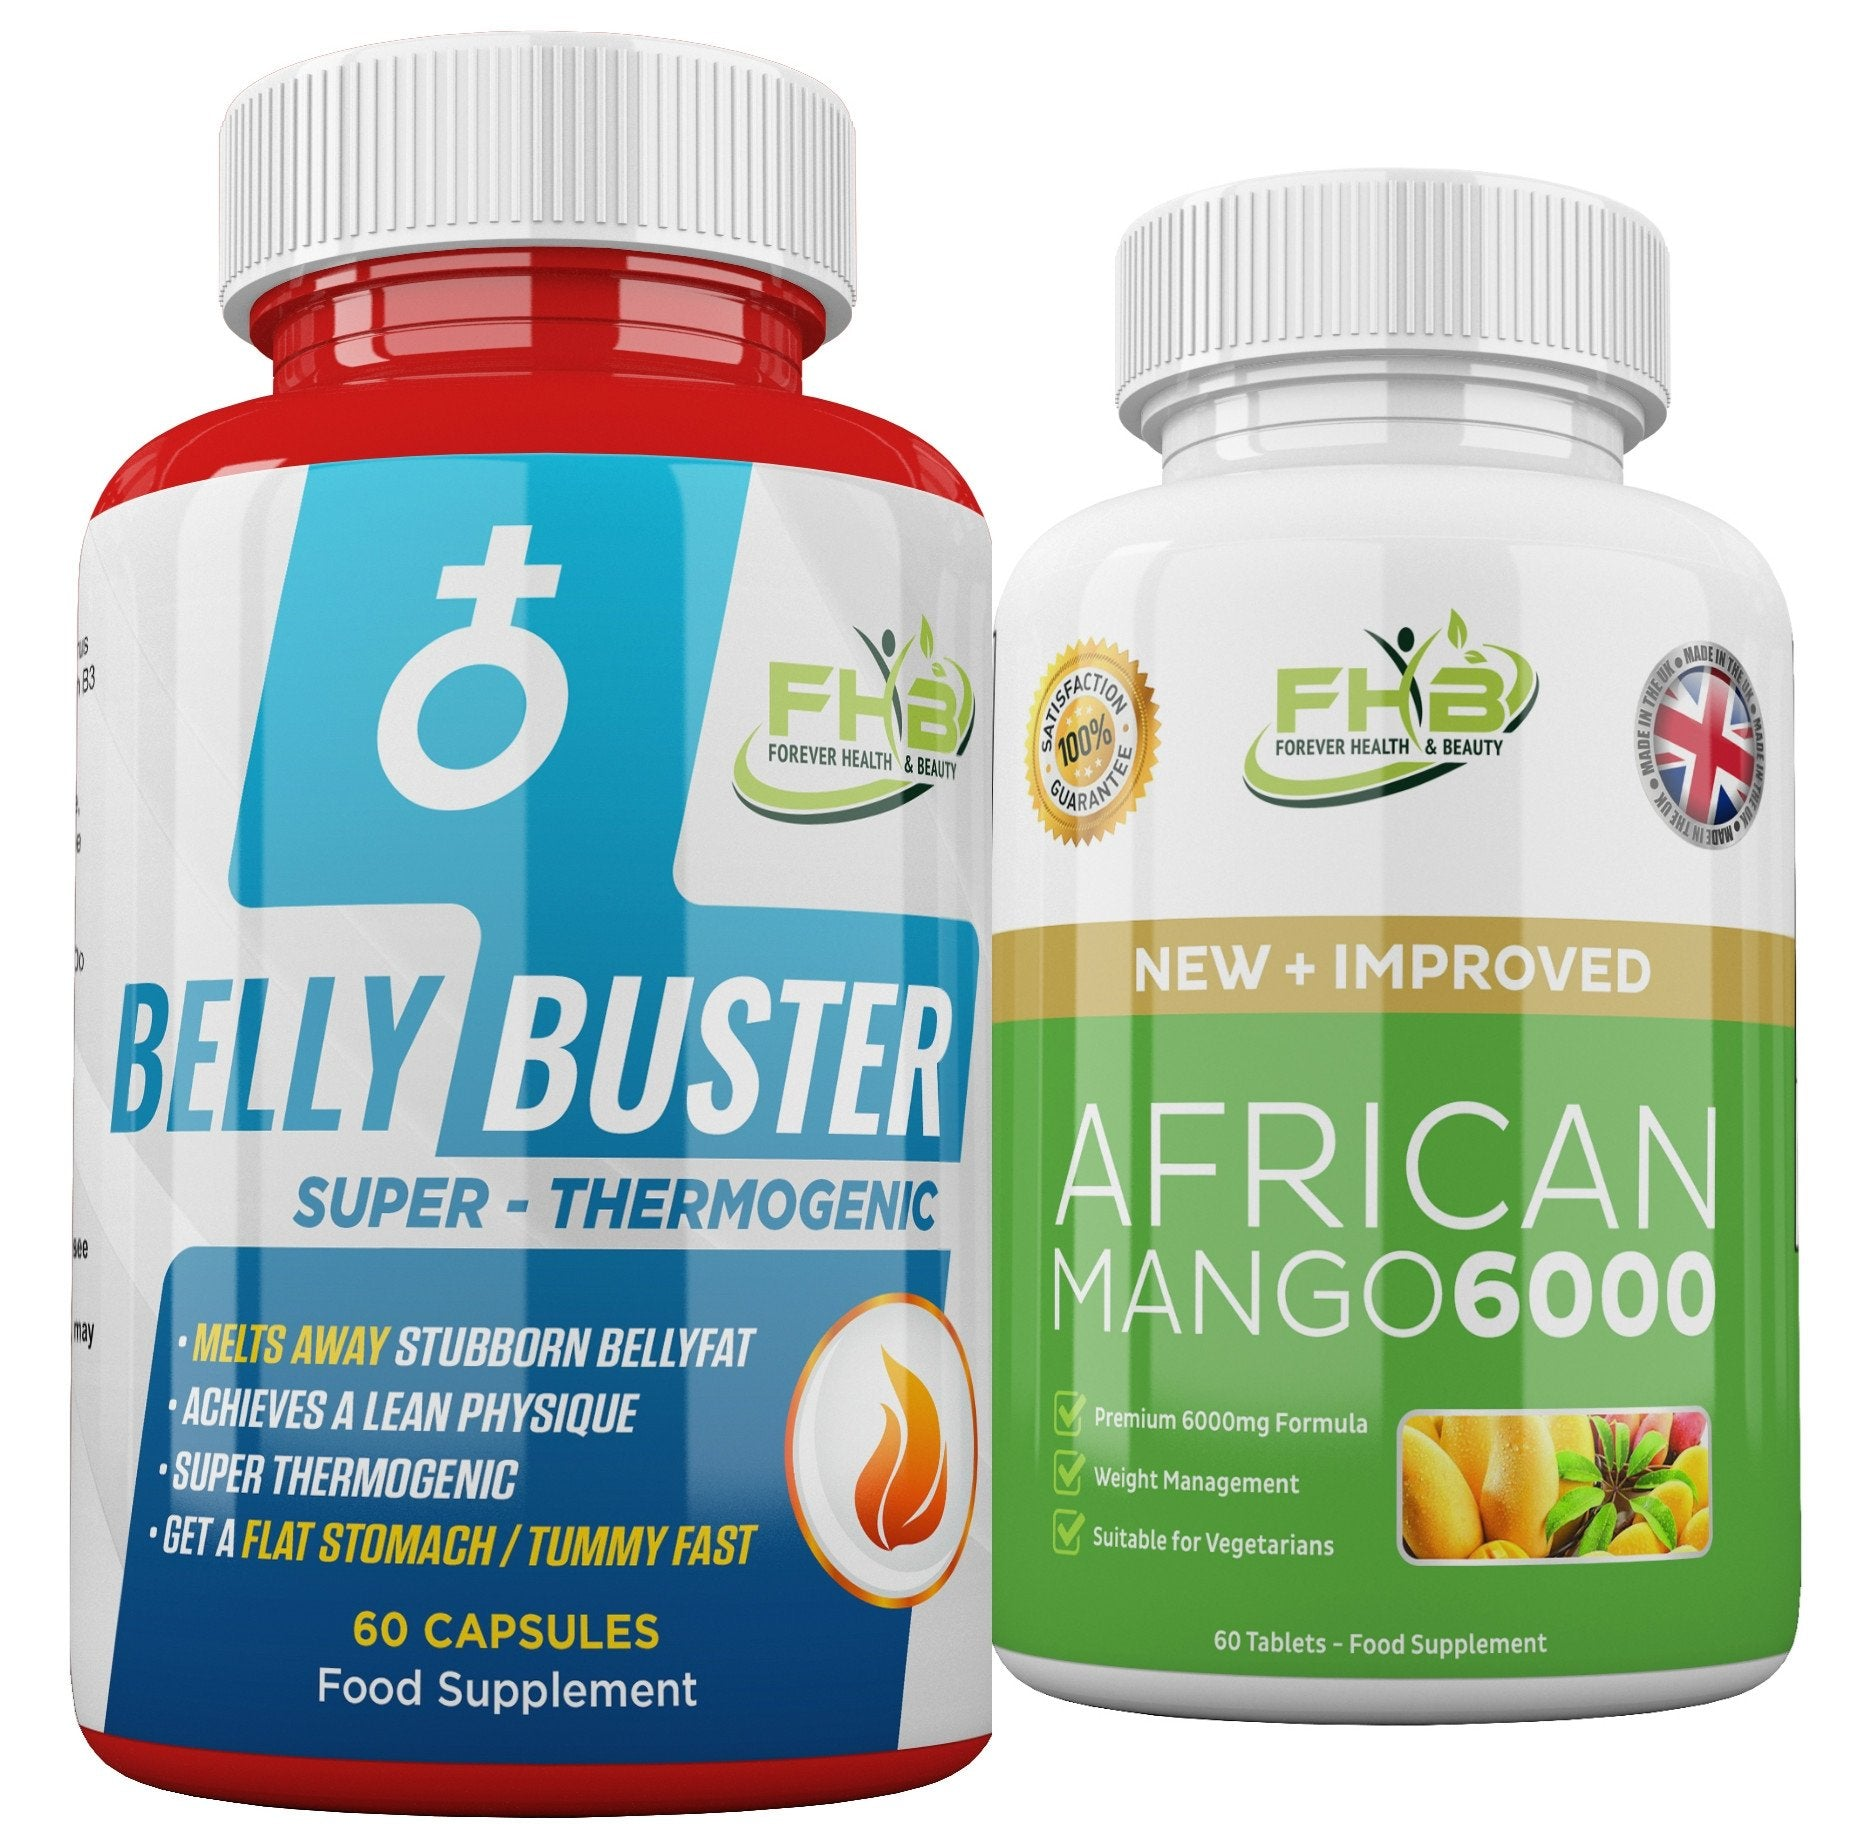 Belly Buster For Men & African Mango 6000 Combo - 120 Capsules